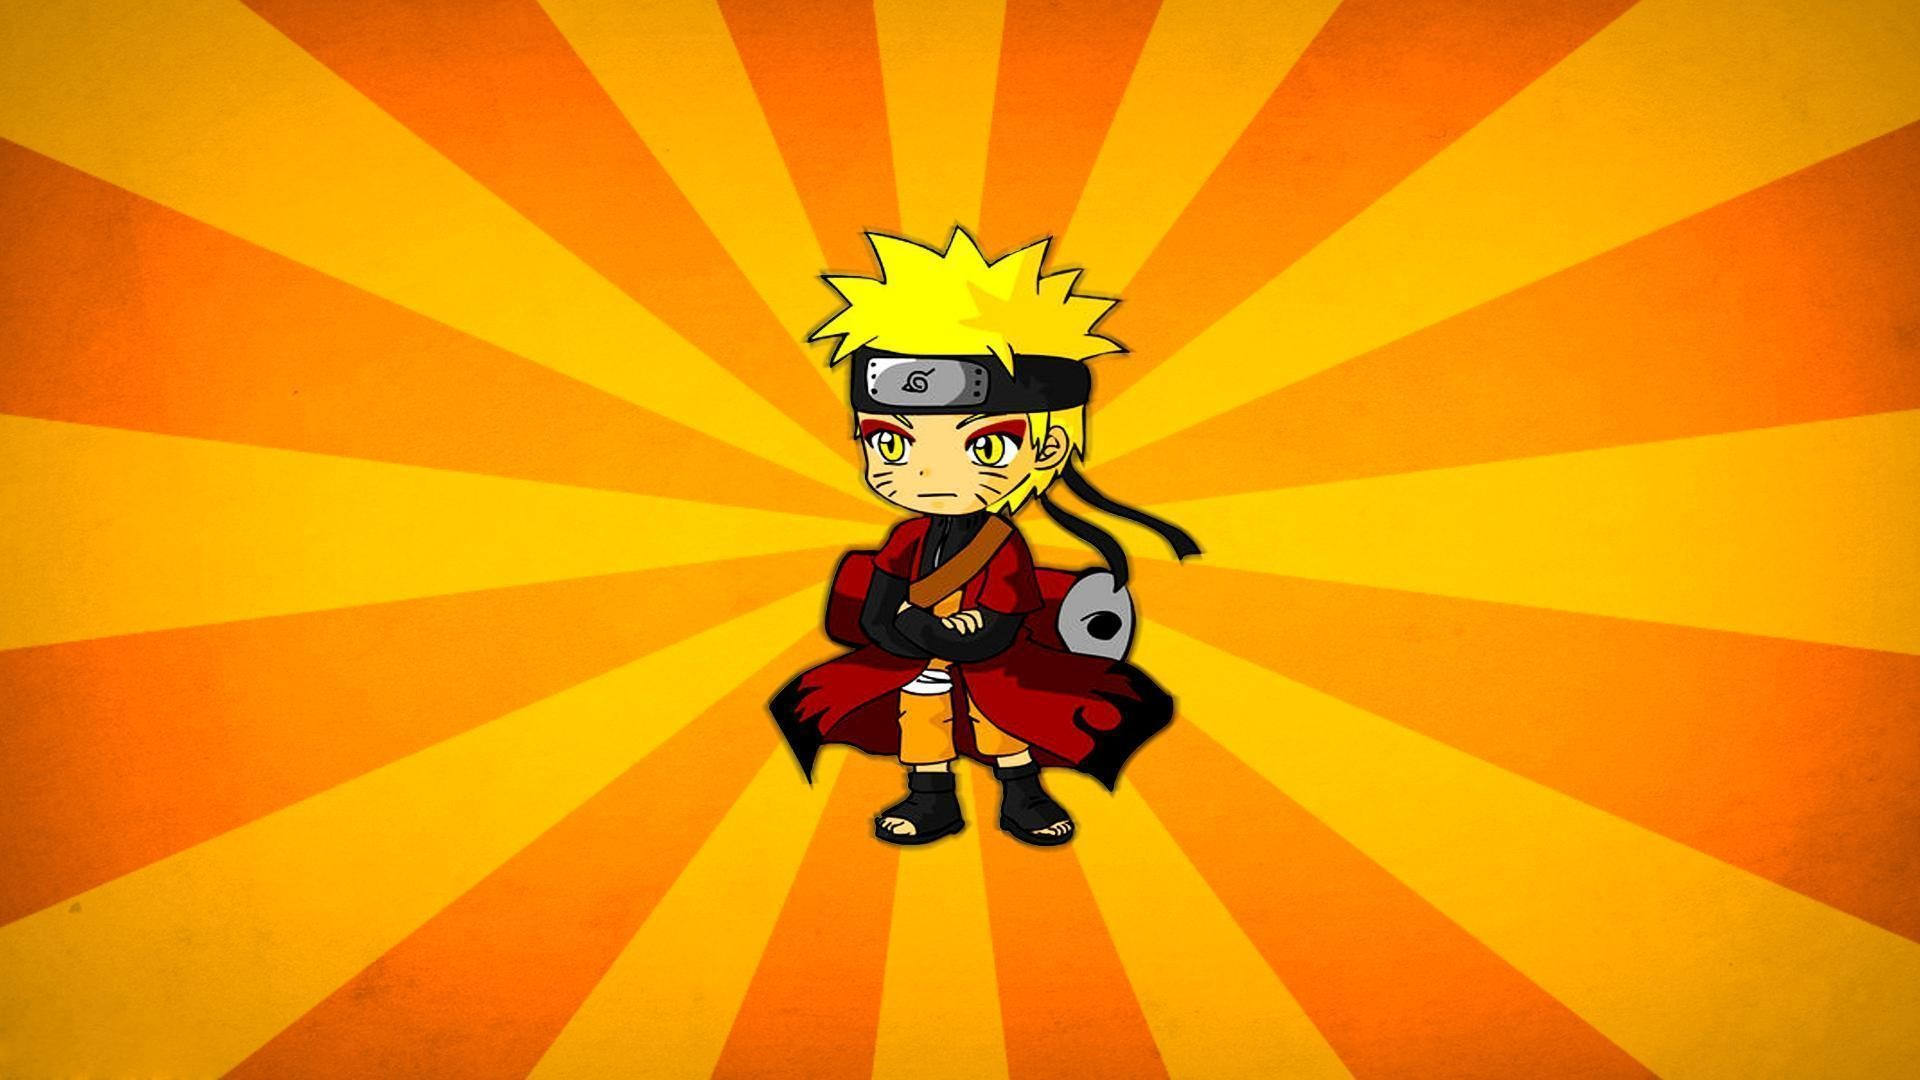 1920x1080 Naruto Sage Mode Free Wallpaper - HD Wallpapers